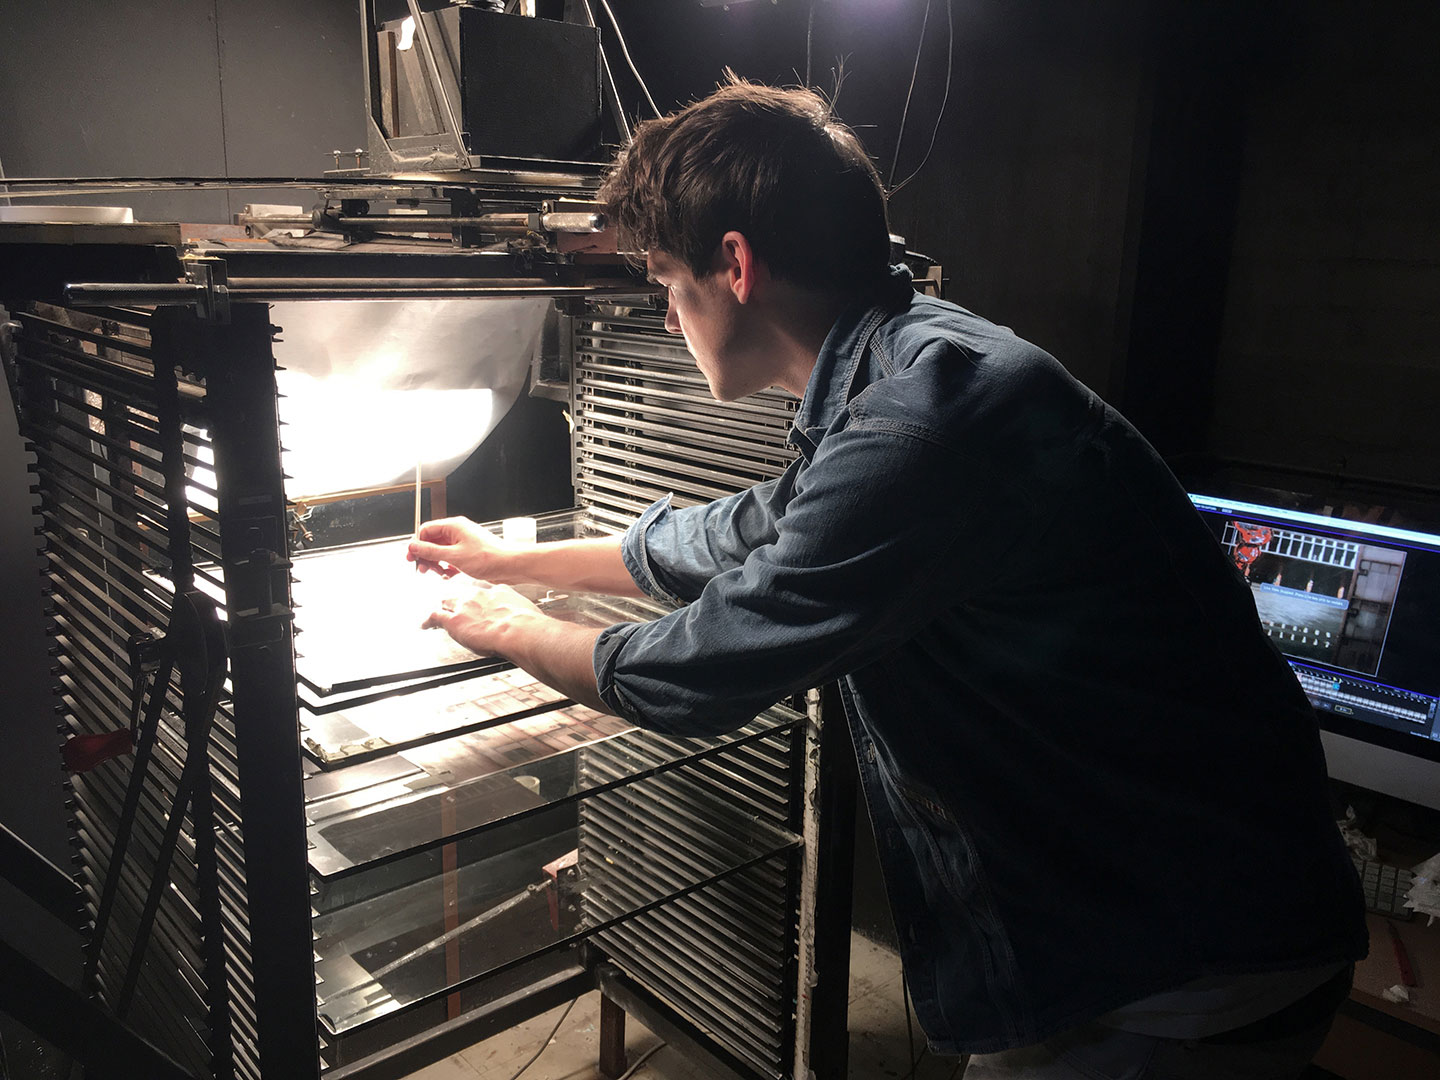 Filmmaker Ollie Magee at work on the multiplane.